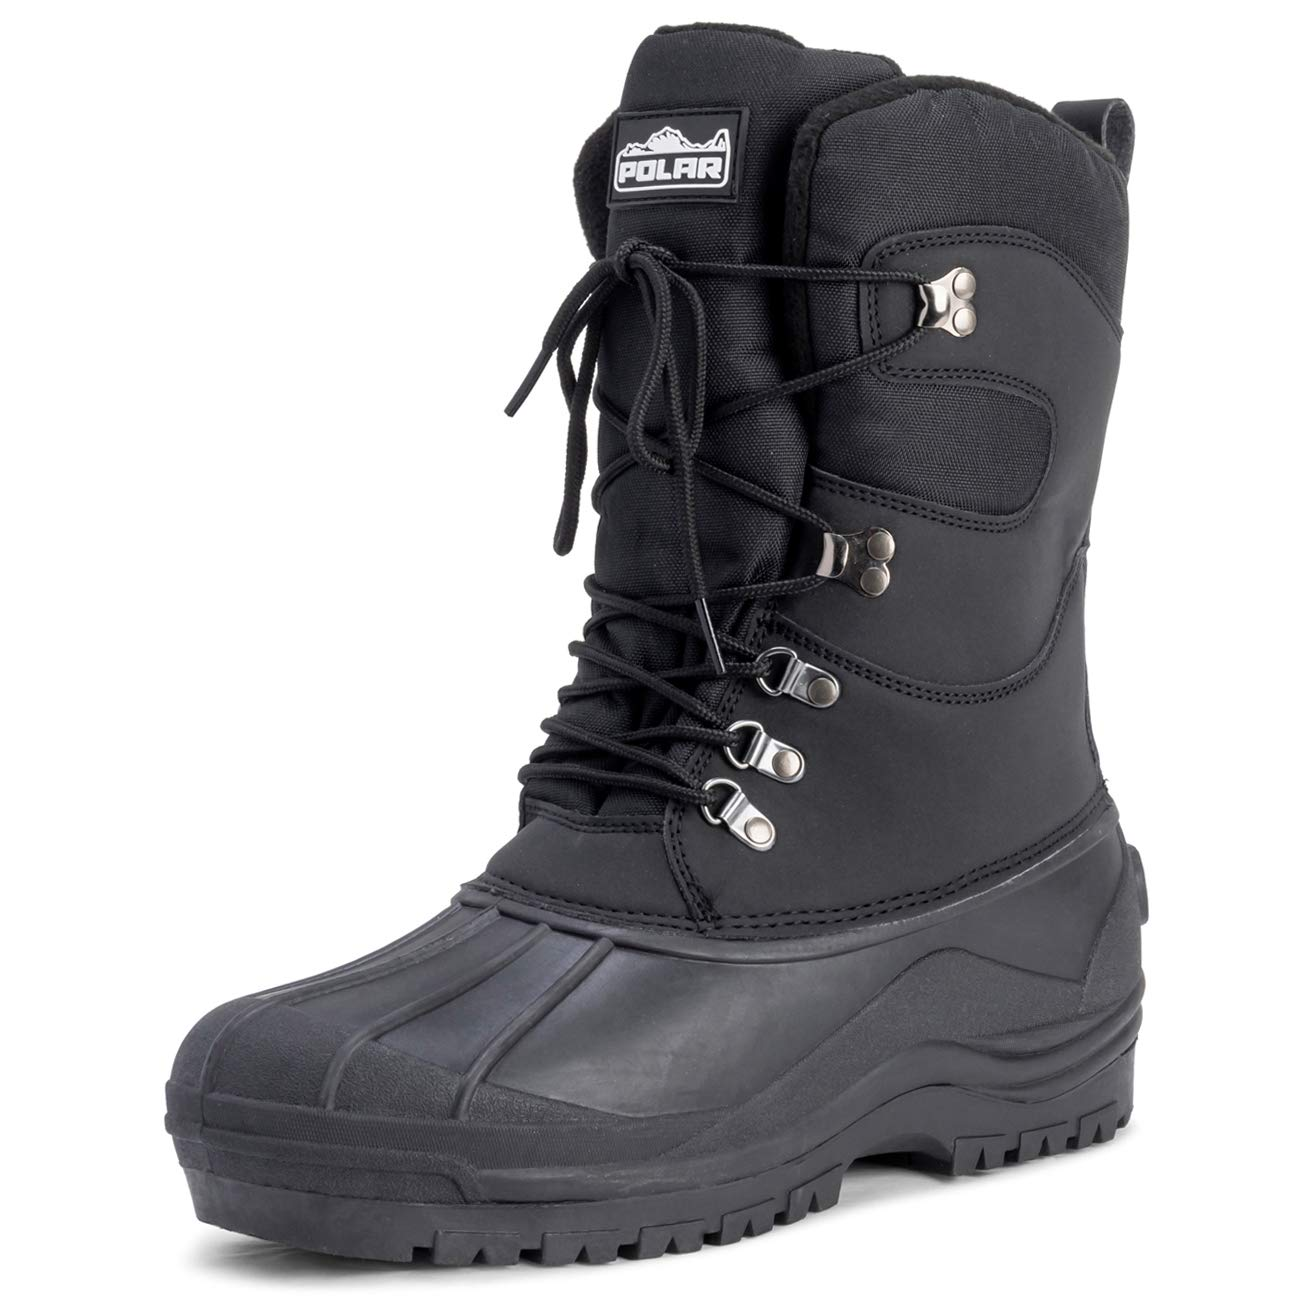 Polar Mens Snow Hiking Mucker Duck Grafters Waterproof Saftey Thermal Boots - Black - US11/EU44 - YC0445 by Polar